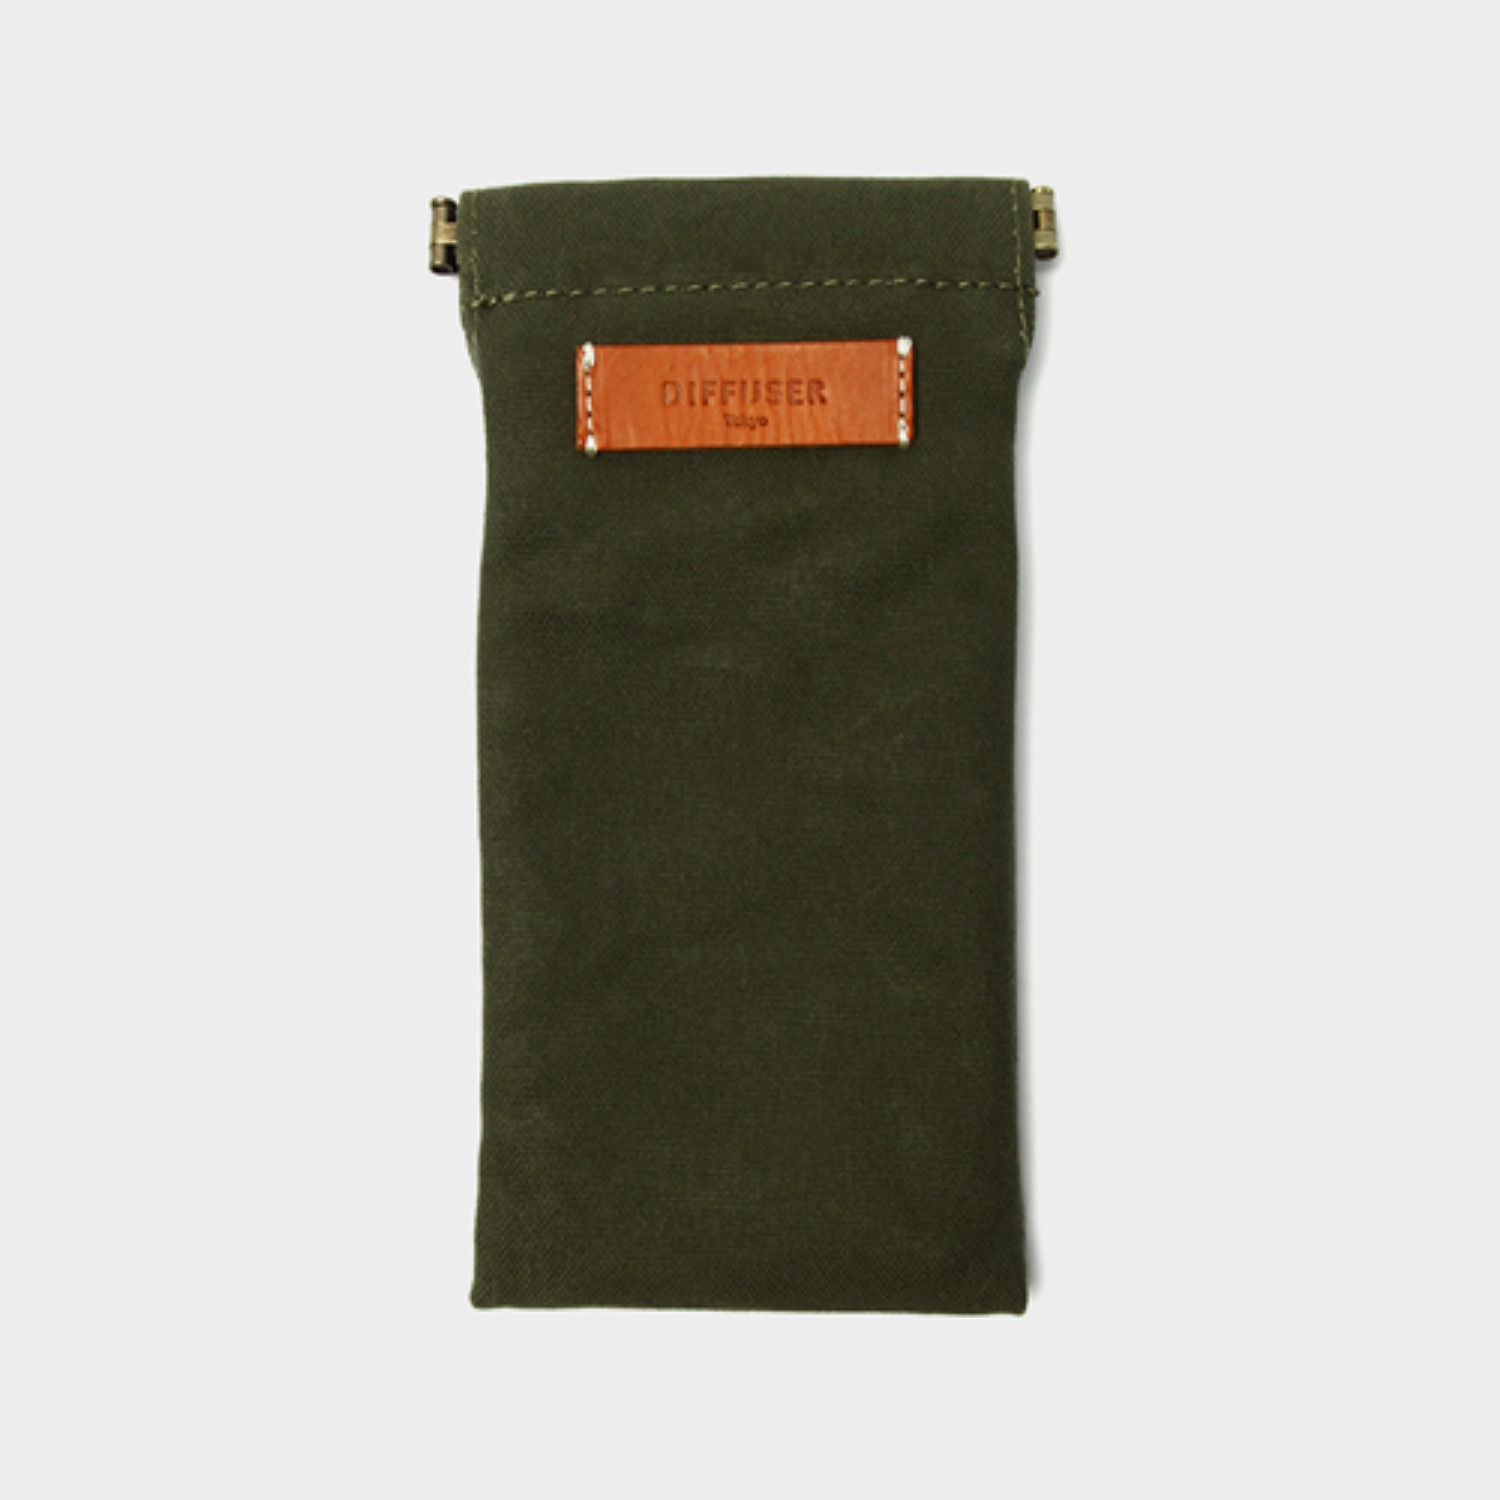 [디퓨저도쿄] SG1025 MILITARY GREEN ORANGE LEATHER (DIFFUSER TOKYO)